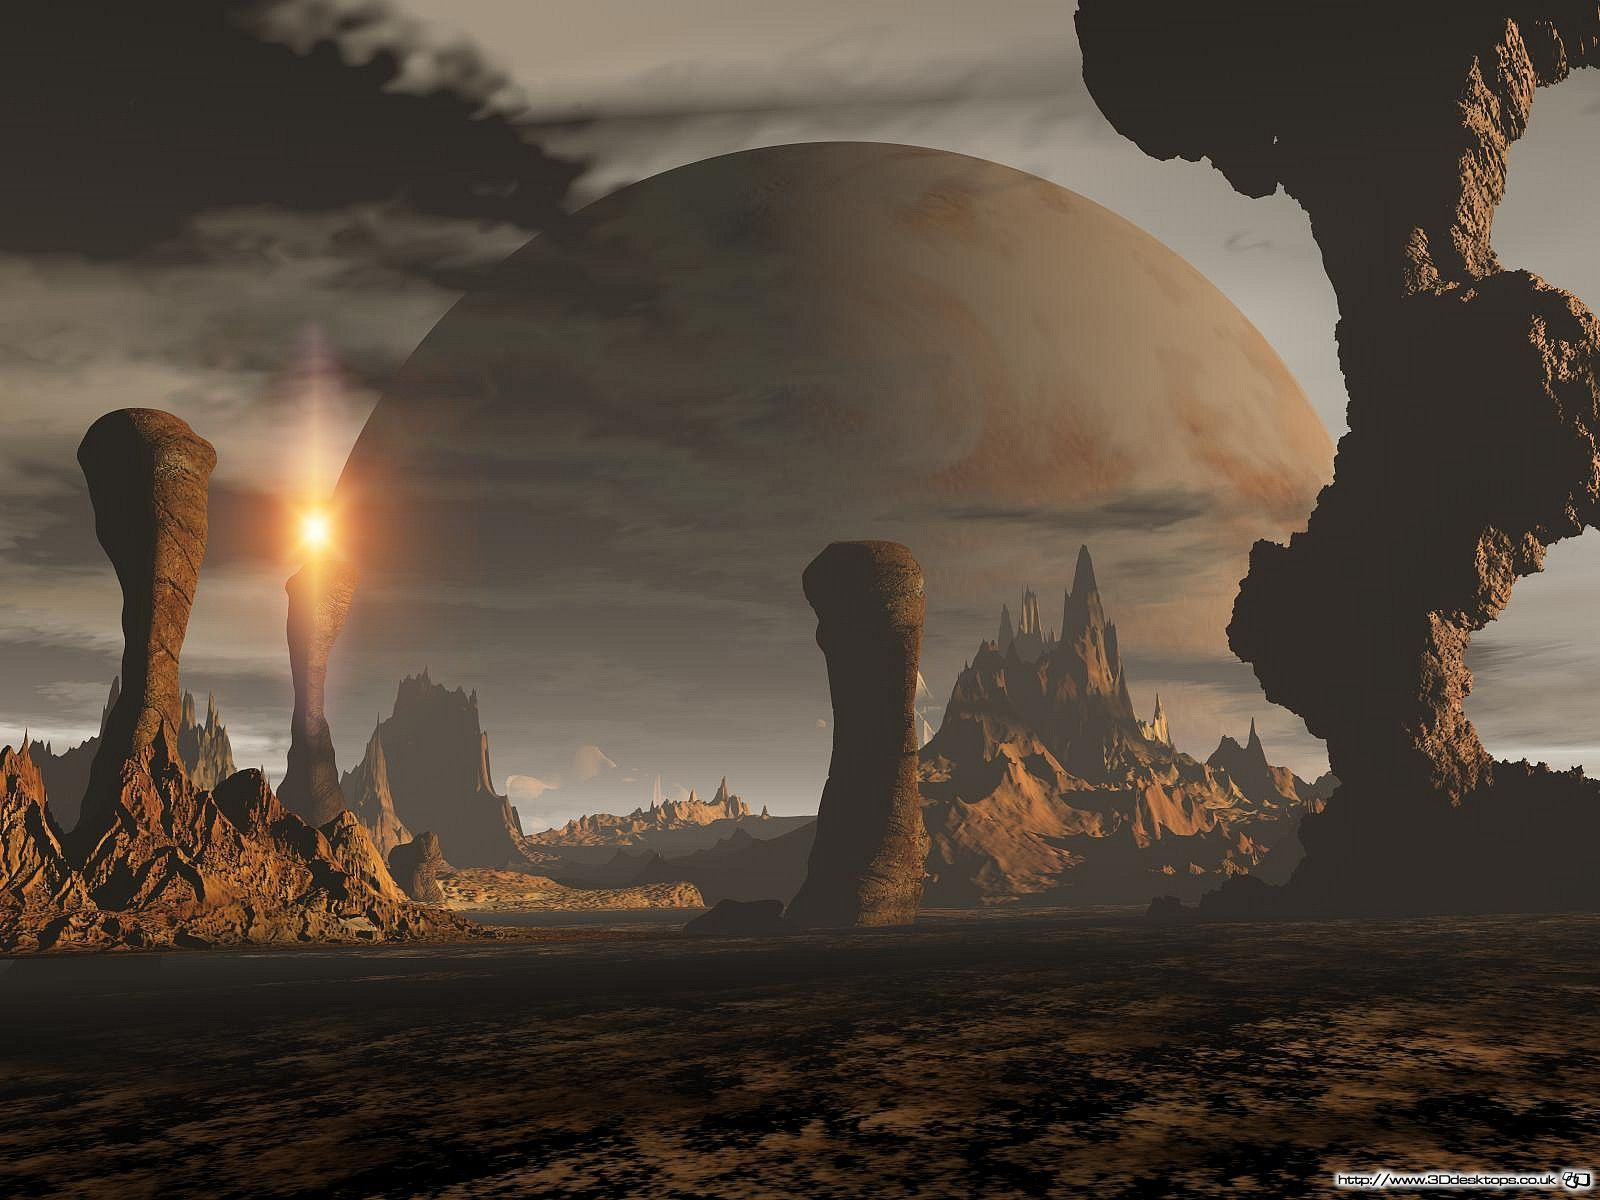 Distant planet moon 3d wallpaper digitalart fantasy - 3d fantasy wallpaper ...